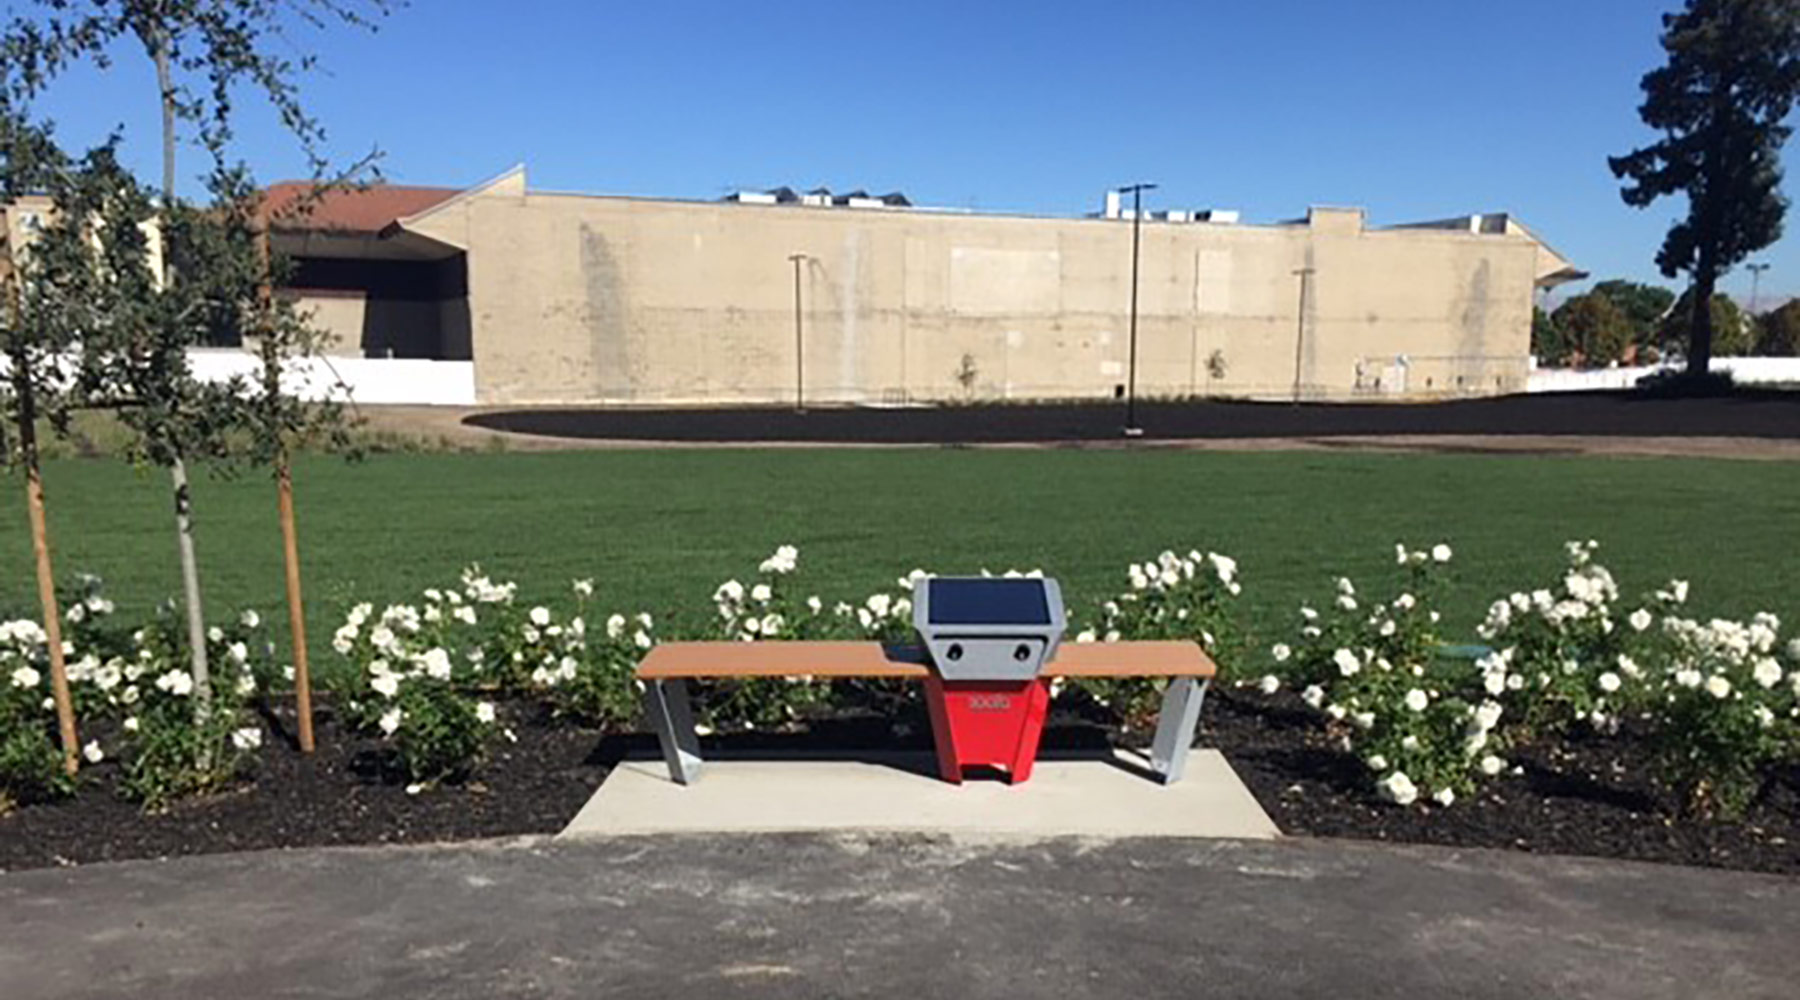 Soofa solar panel bench installed on concrete pad; surrounding landscaping complete.